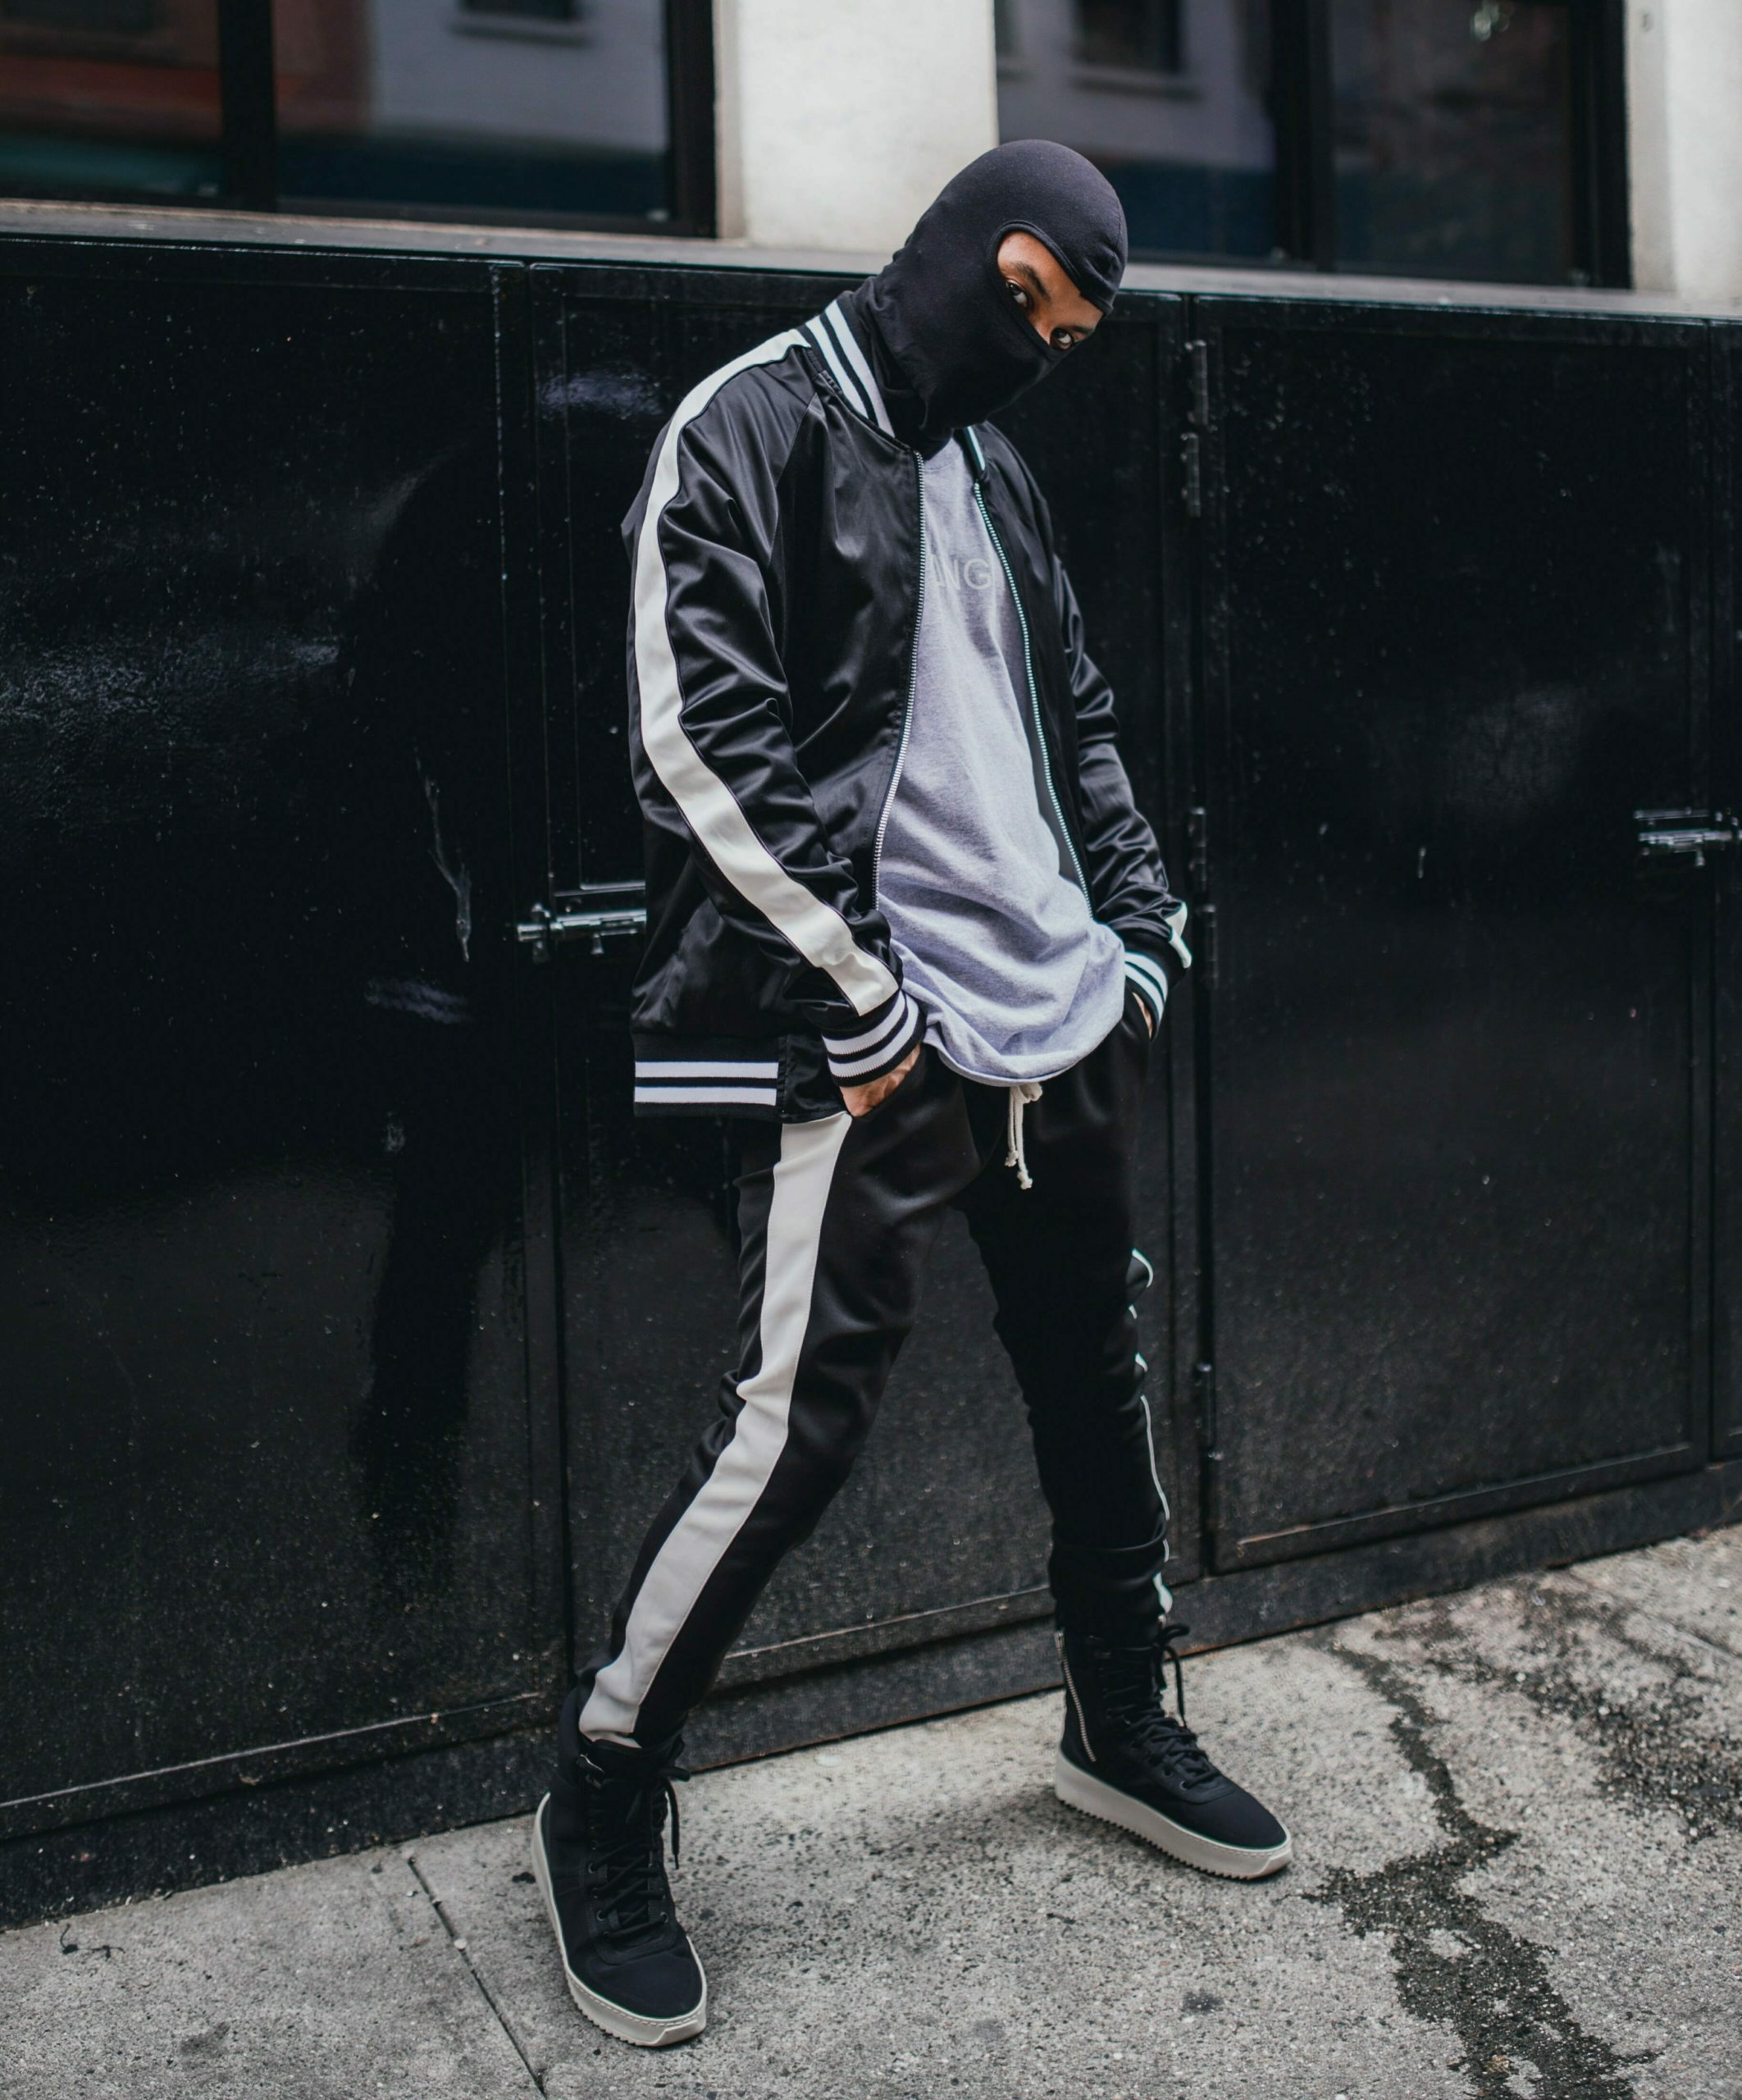 Style Inspiration Instagram Accounts (Our Top Picks)